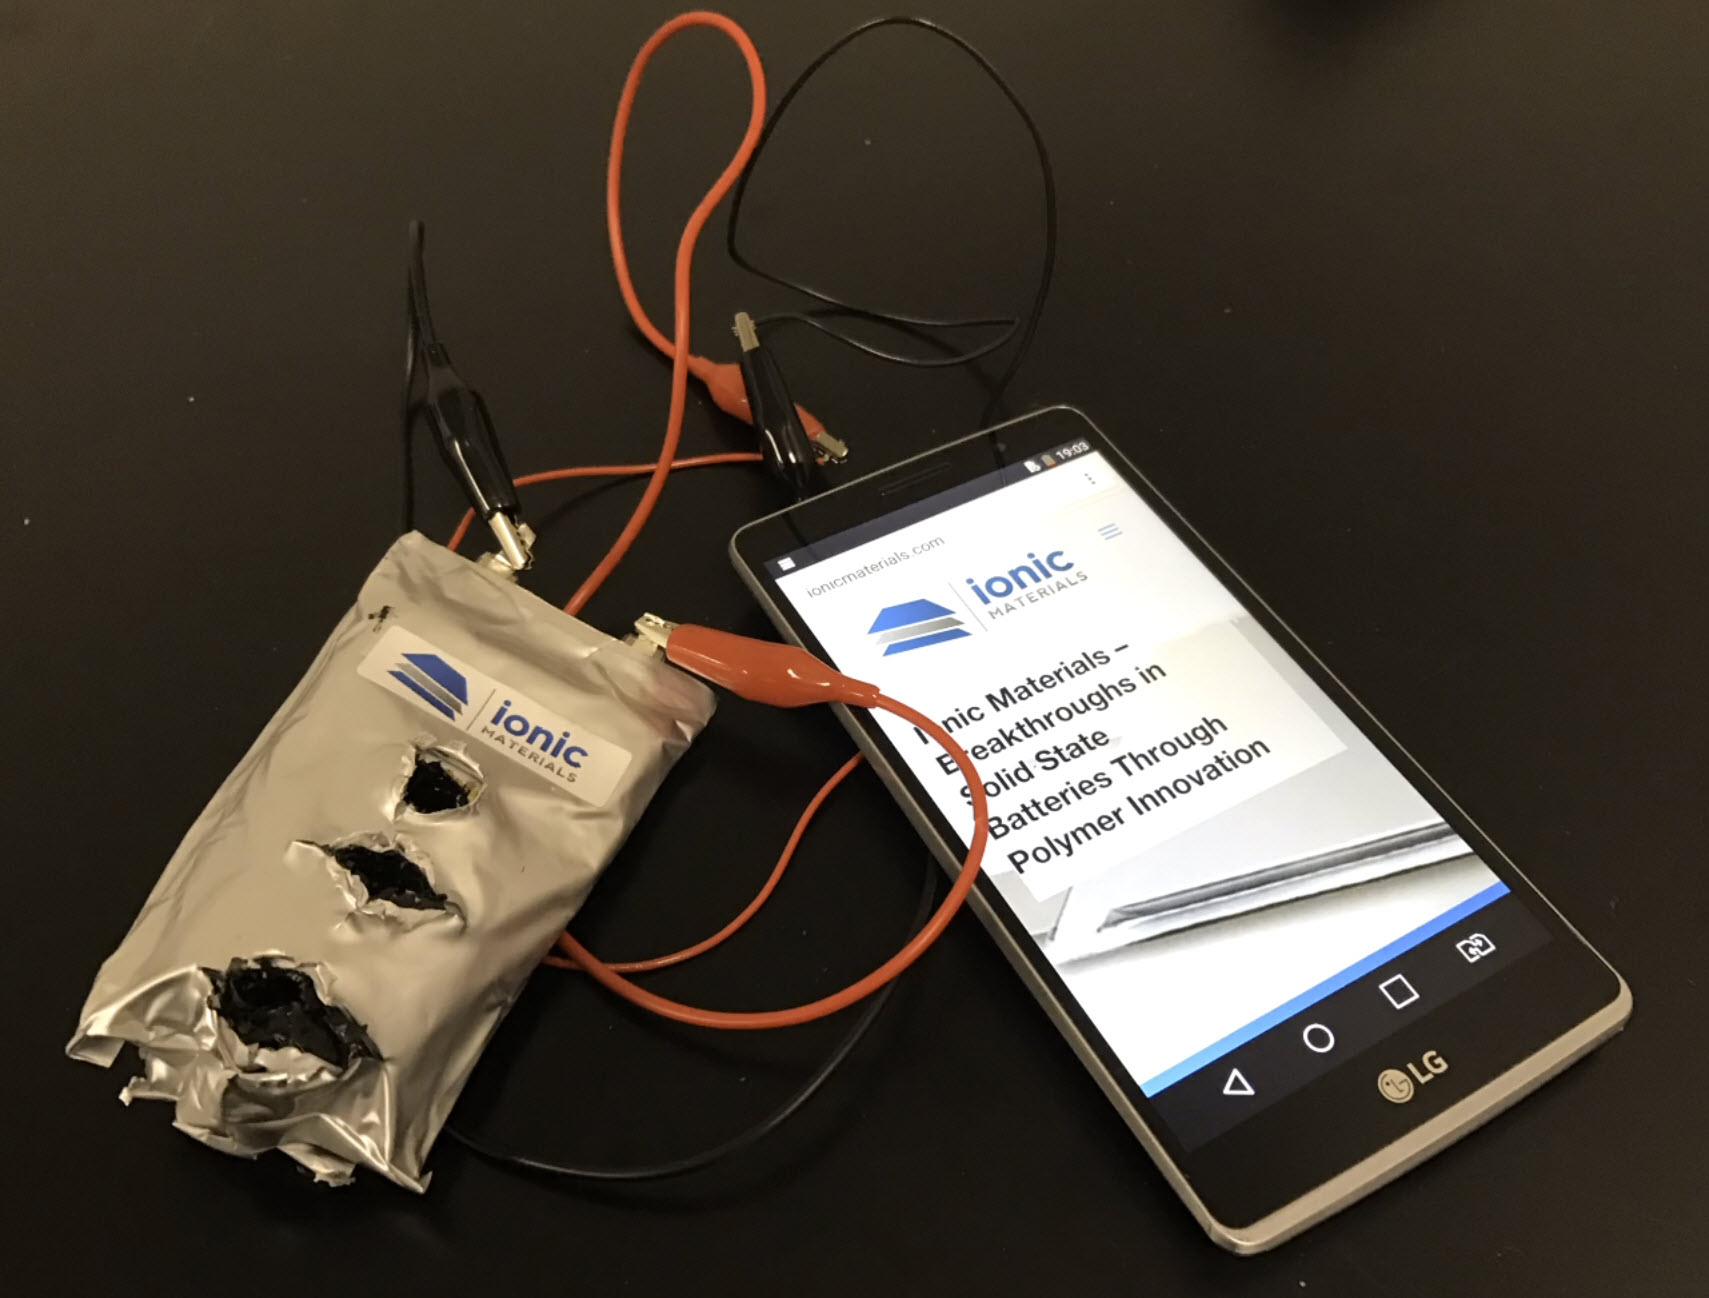 An Ionic Materials Li-Ion battery pack, full of bullet holes, still safely provides power to a device. Photo: Ionic Materials